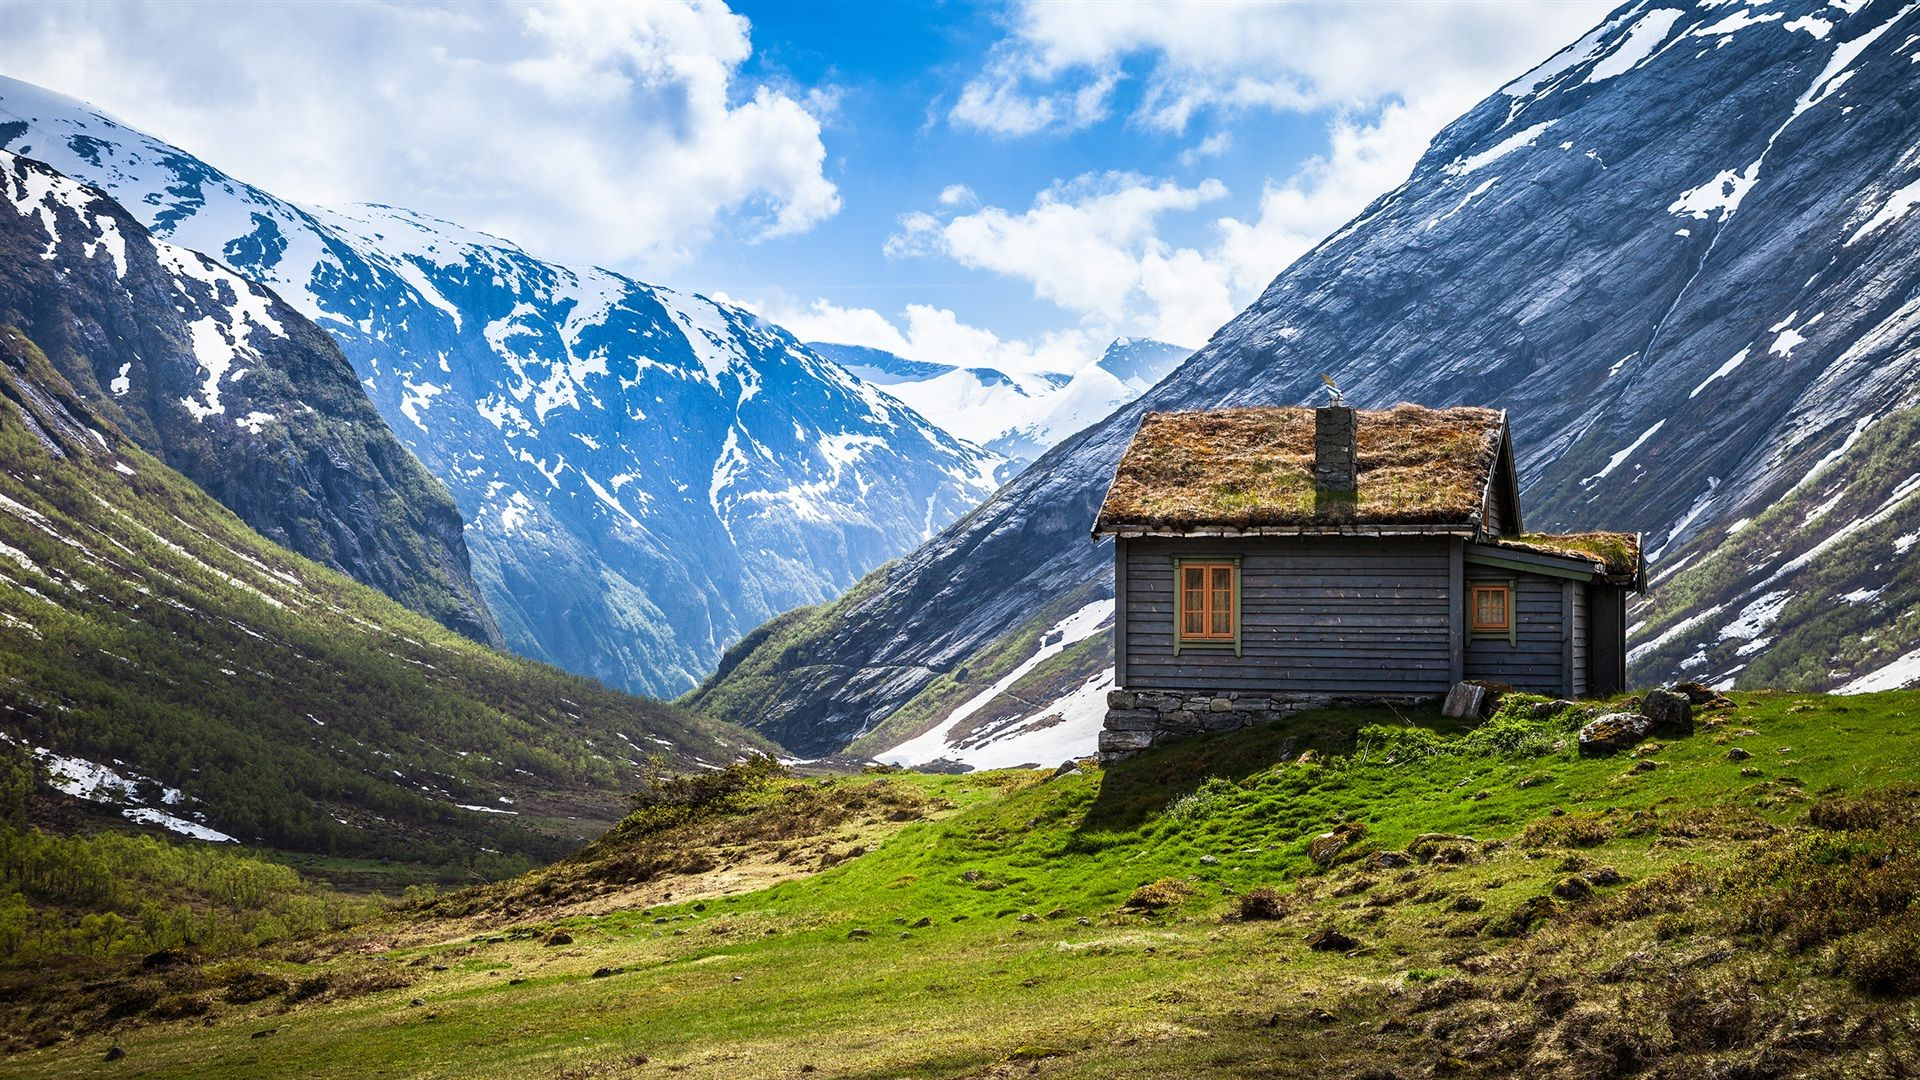 The Norway Scenery, Mountains And Houses Wallpaper - 1920X1080